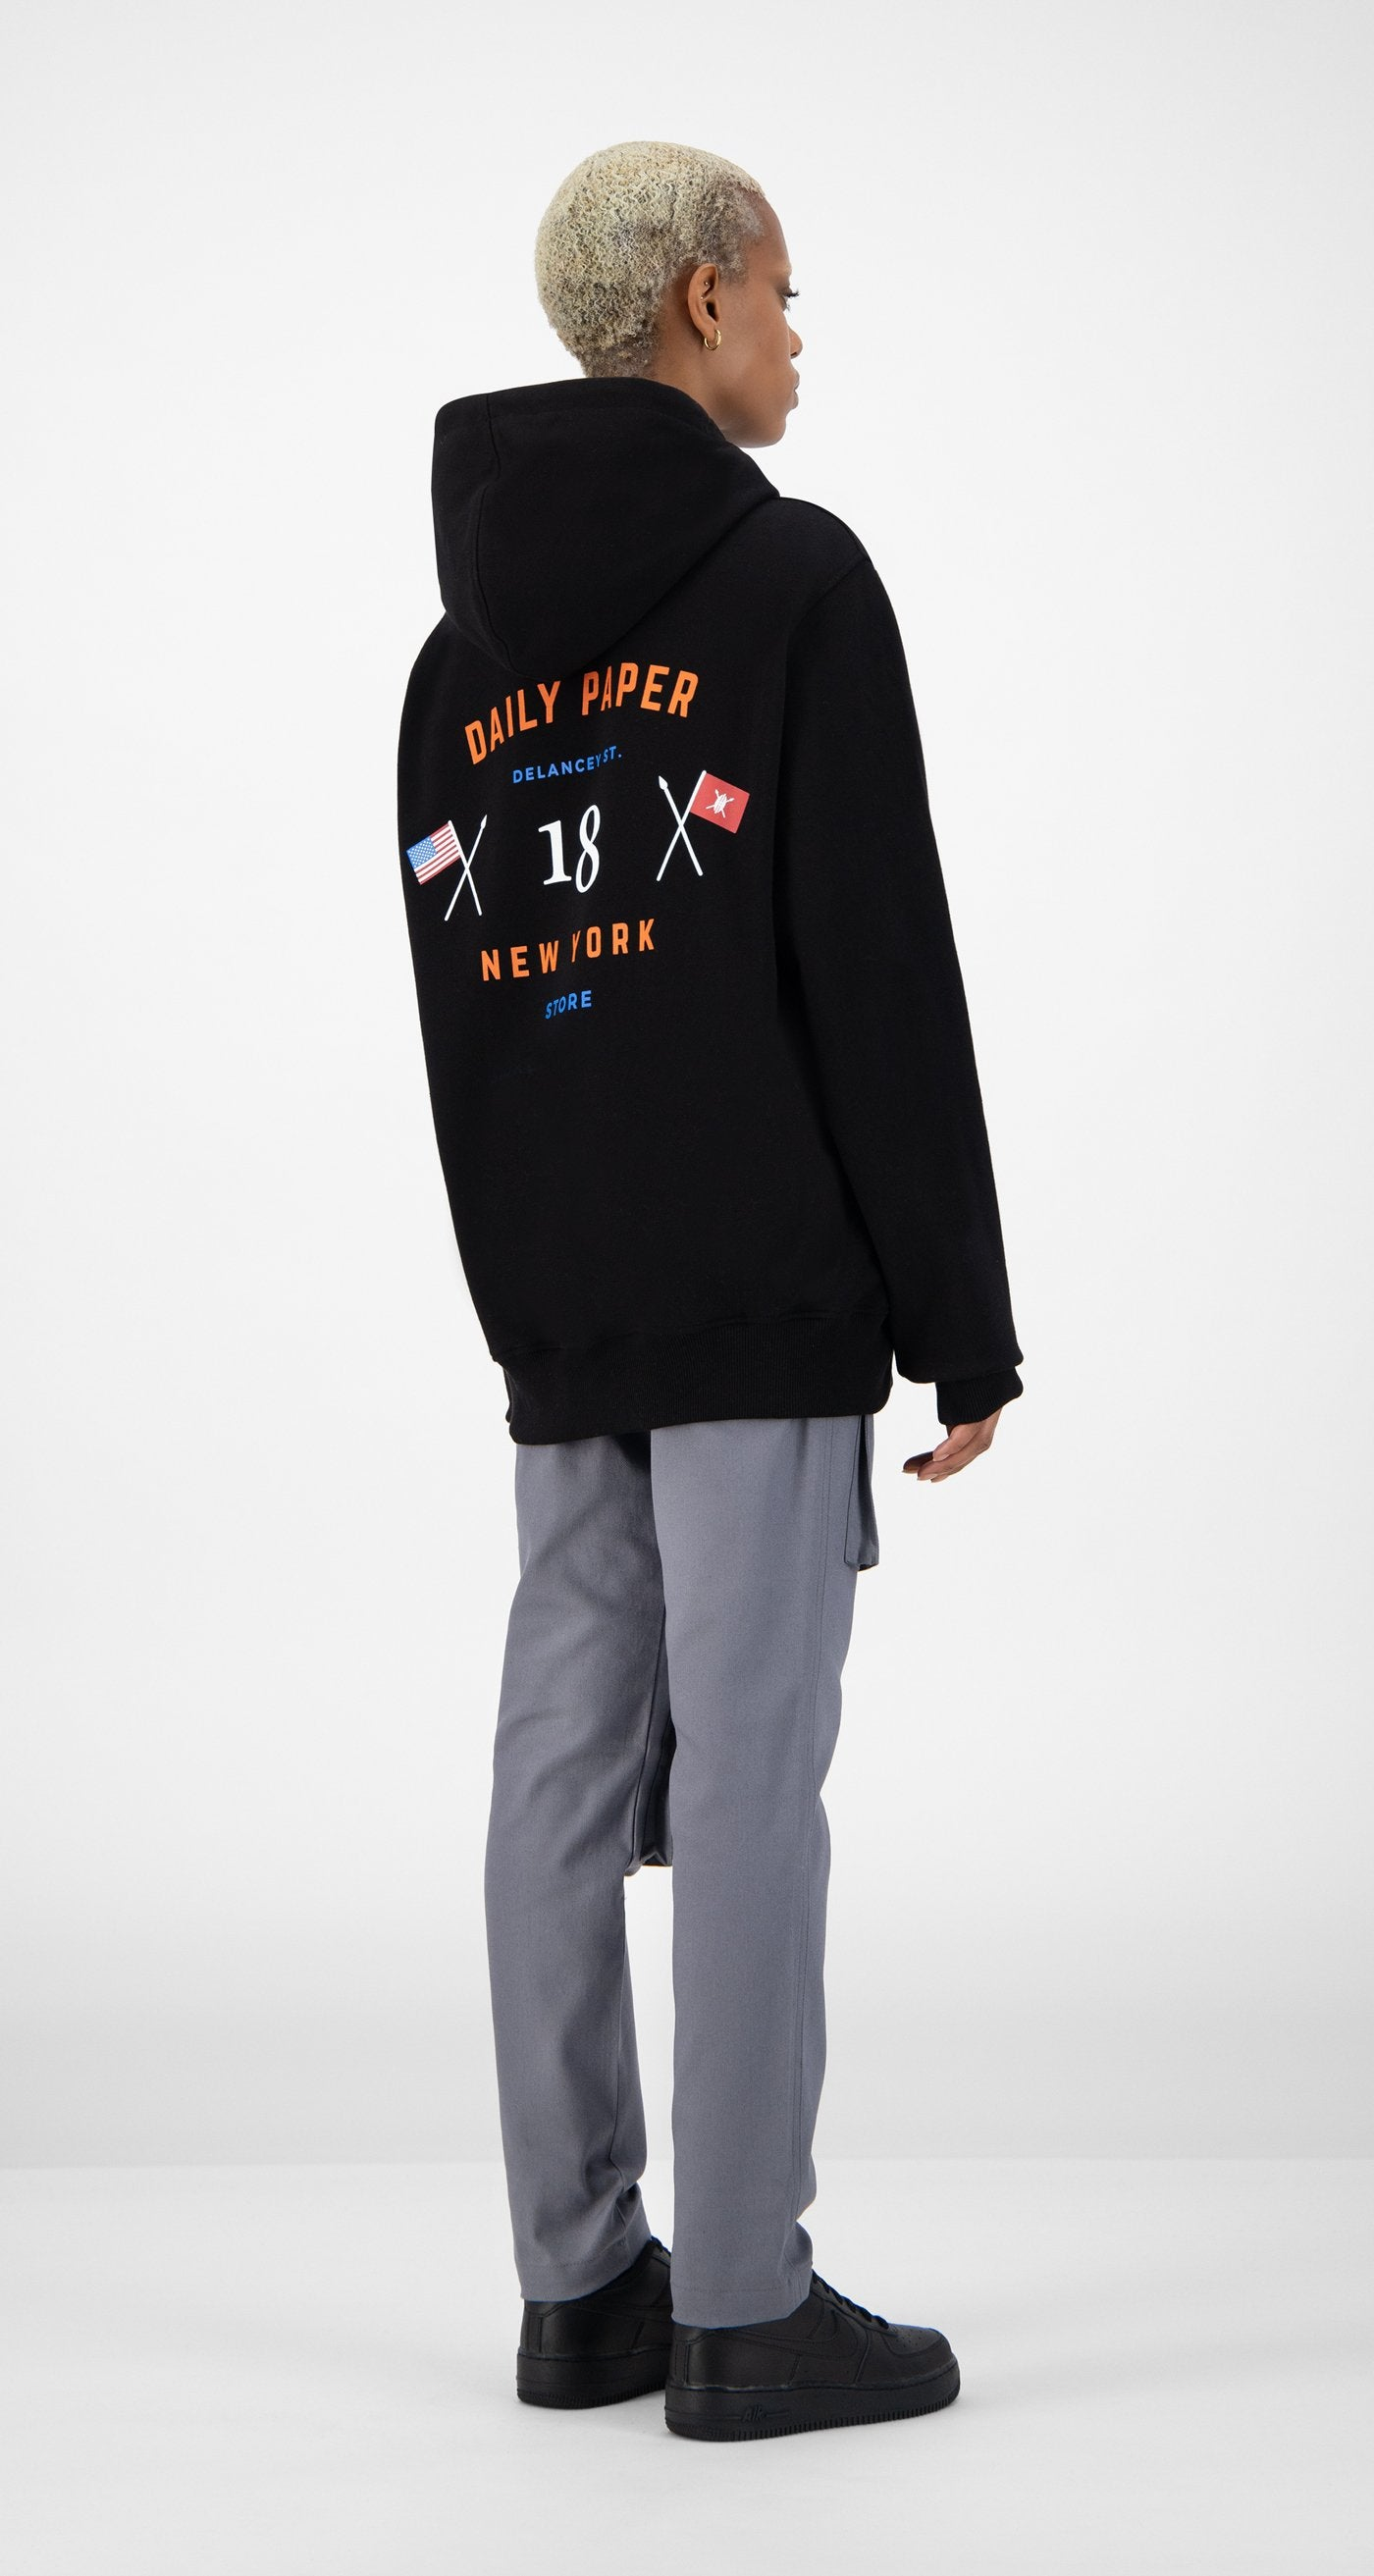 Daily Paper - Black NYC Store Hoody - Women Rear